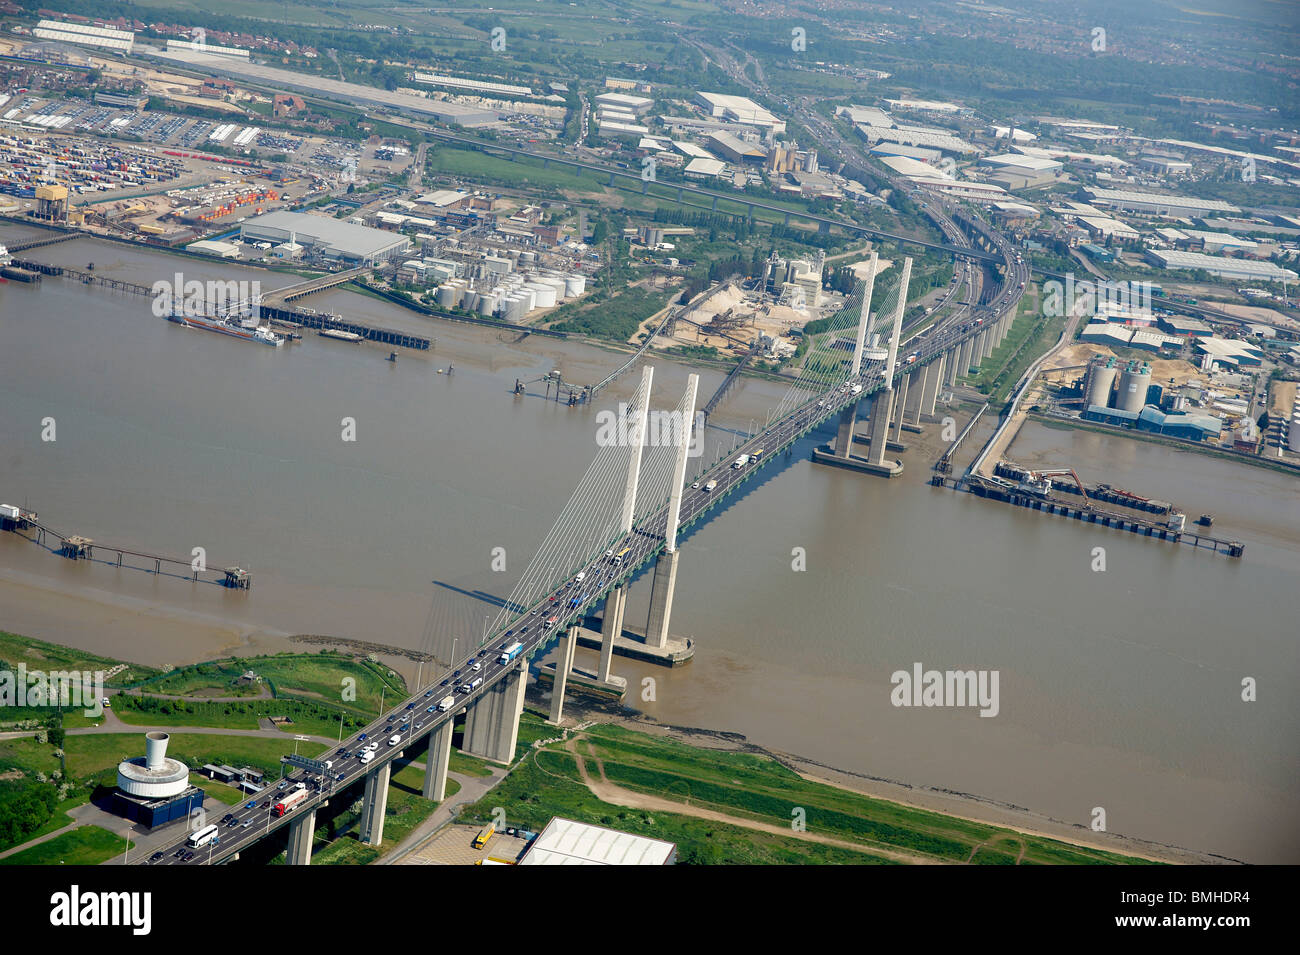 Dartford Crossing, Queen Elizabeth Bridge over the Thames, South East England Stock Photo